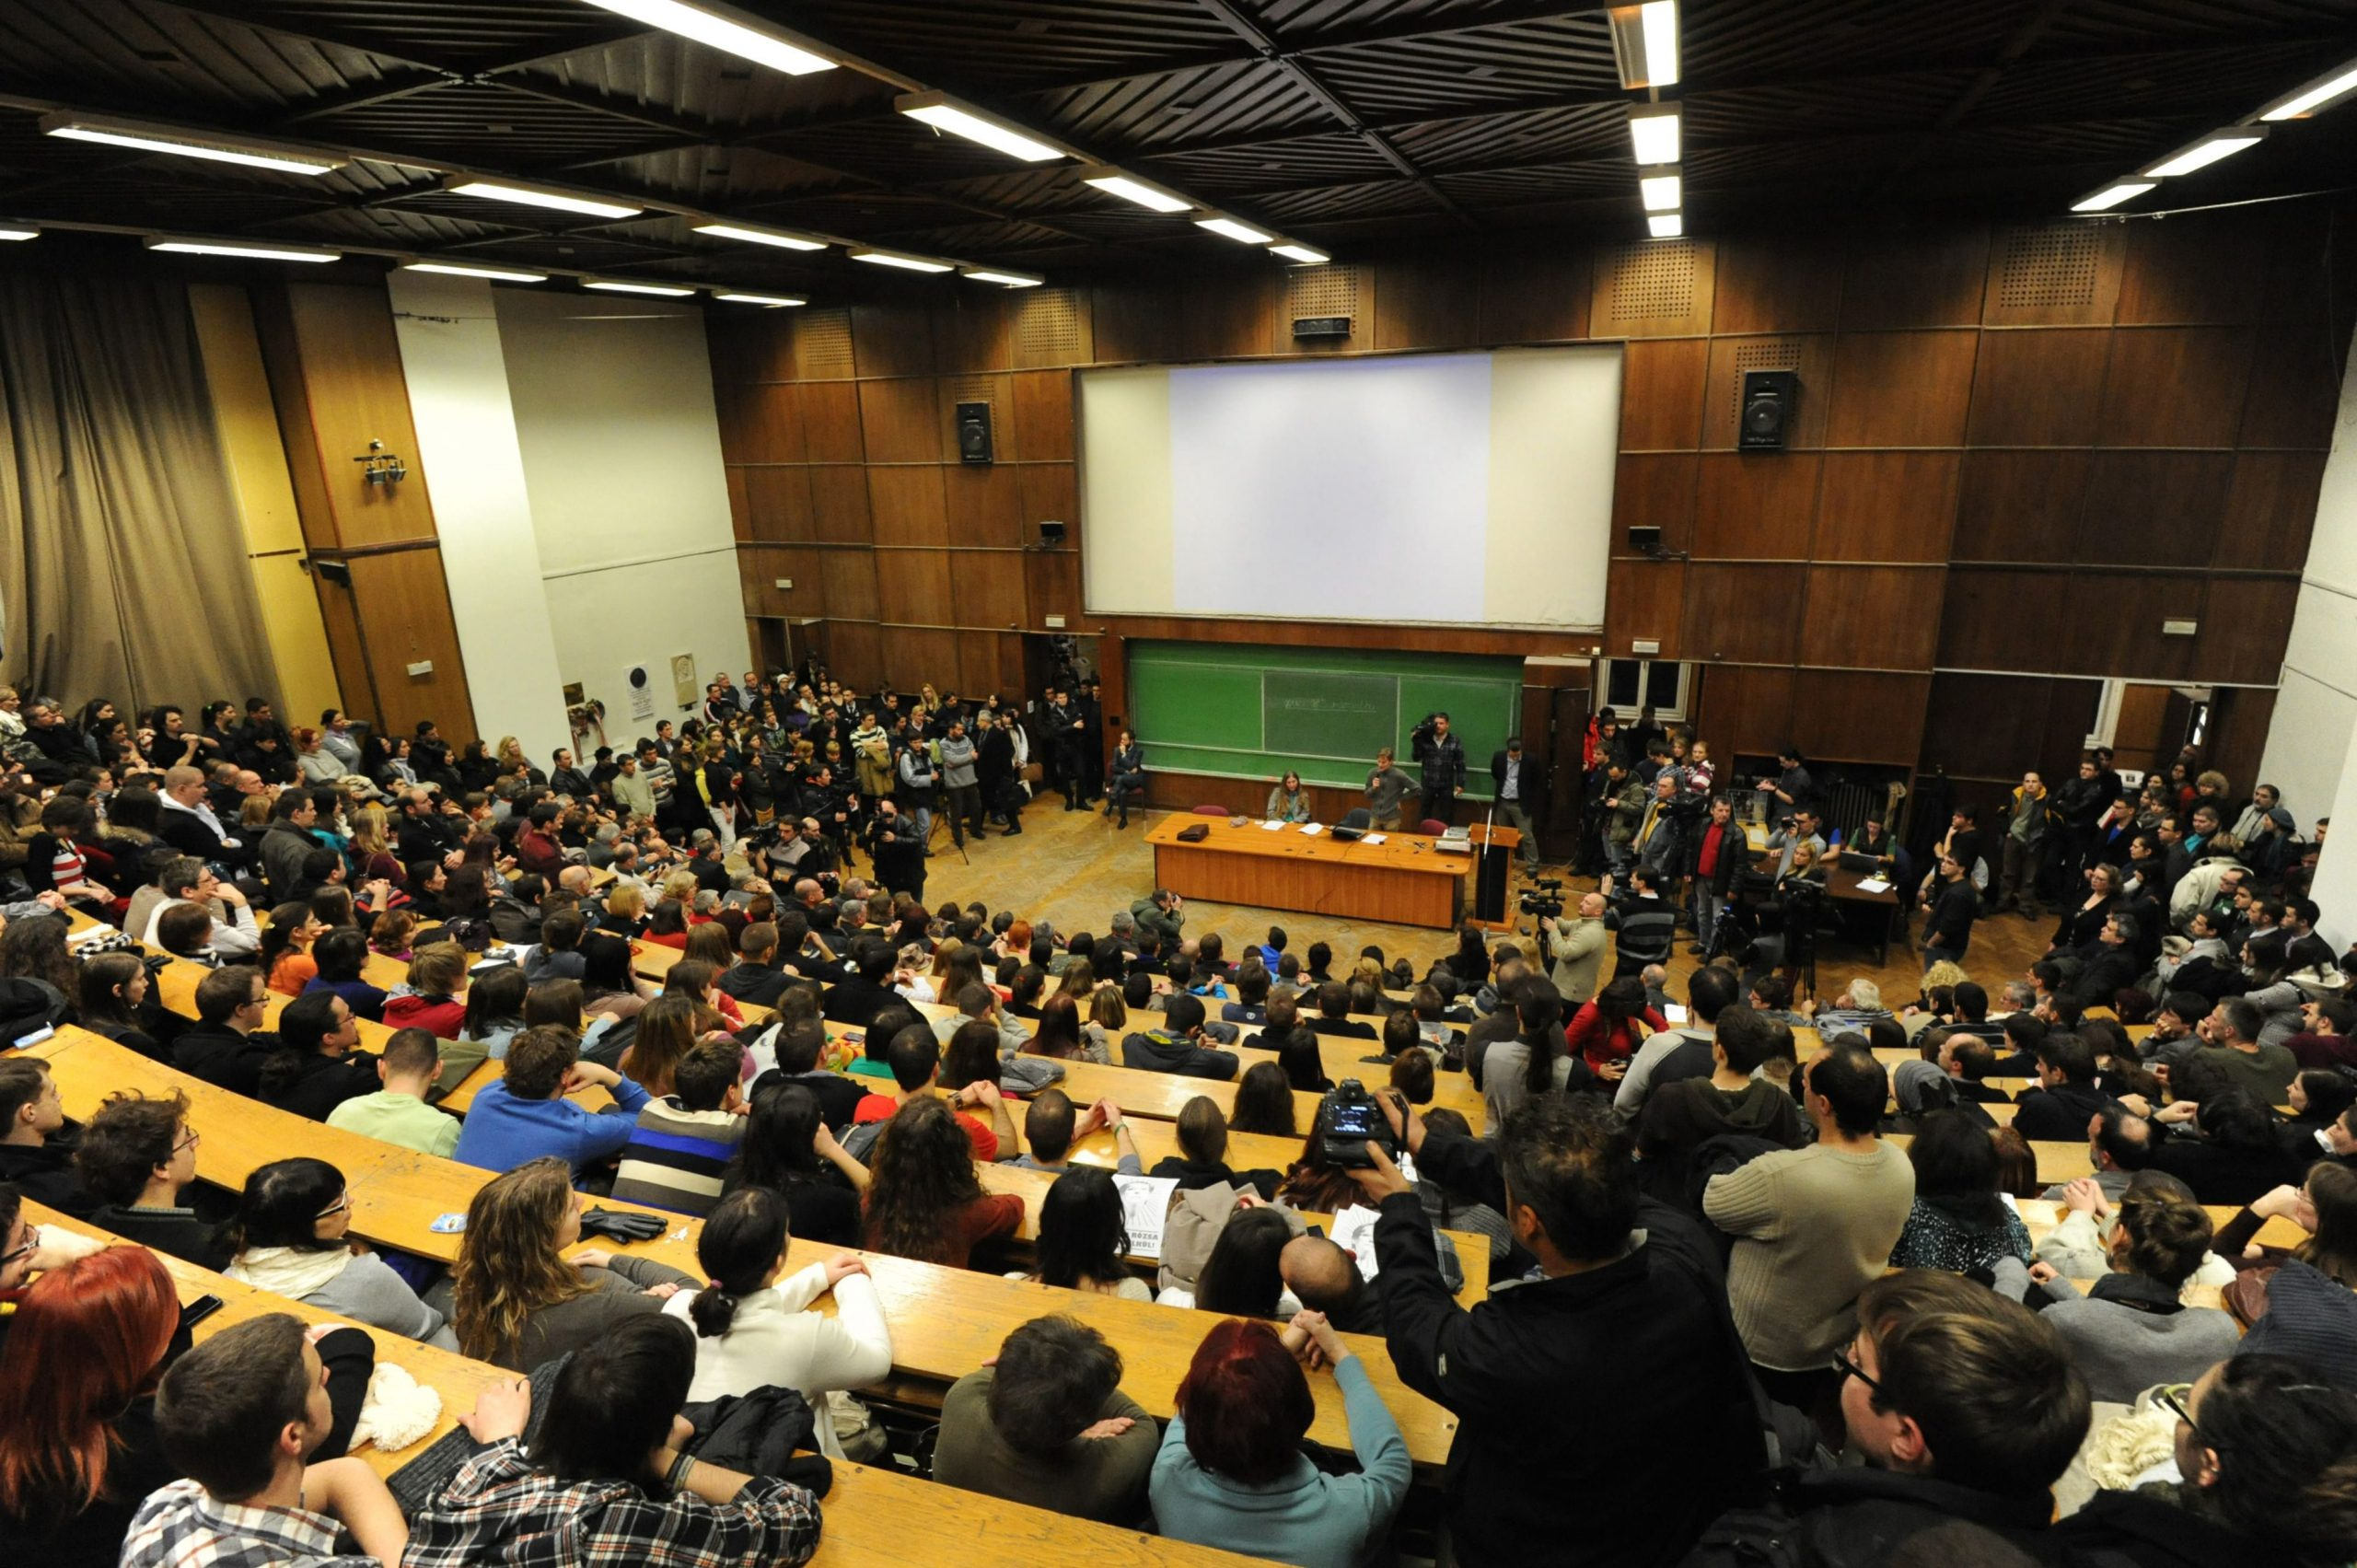 Outsourcing of Higher Education Continues Despite Uncertainties